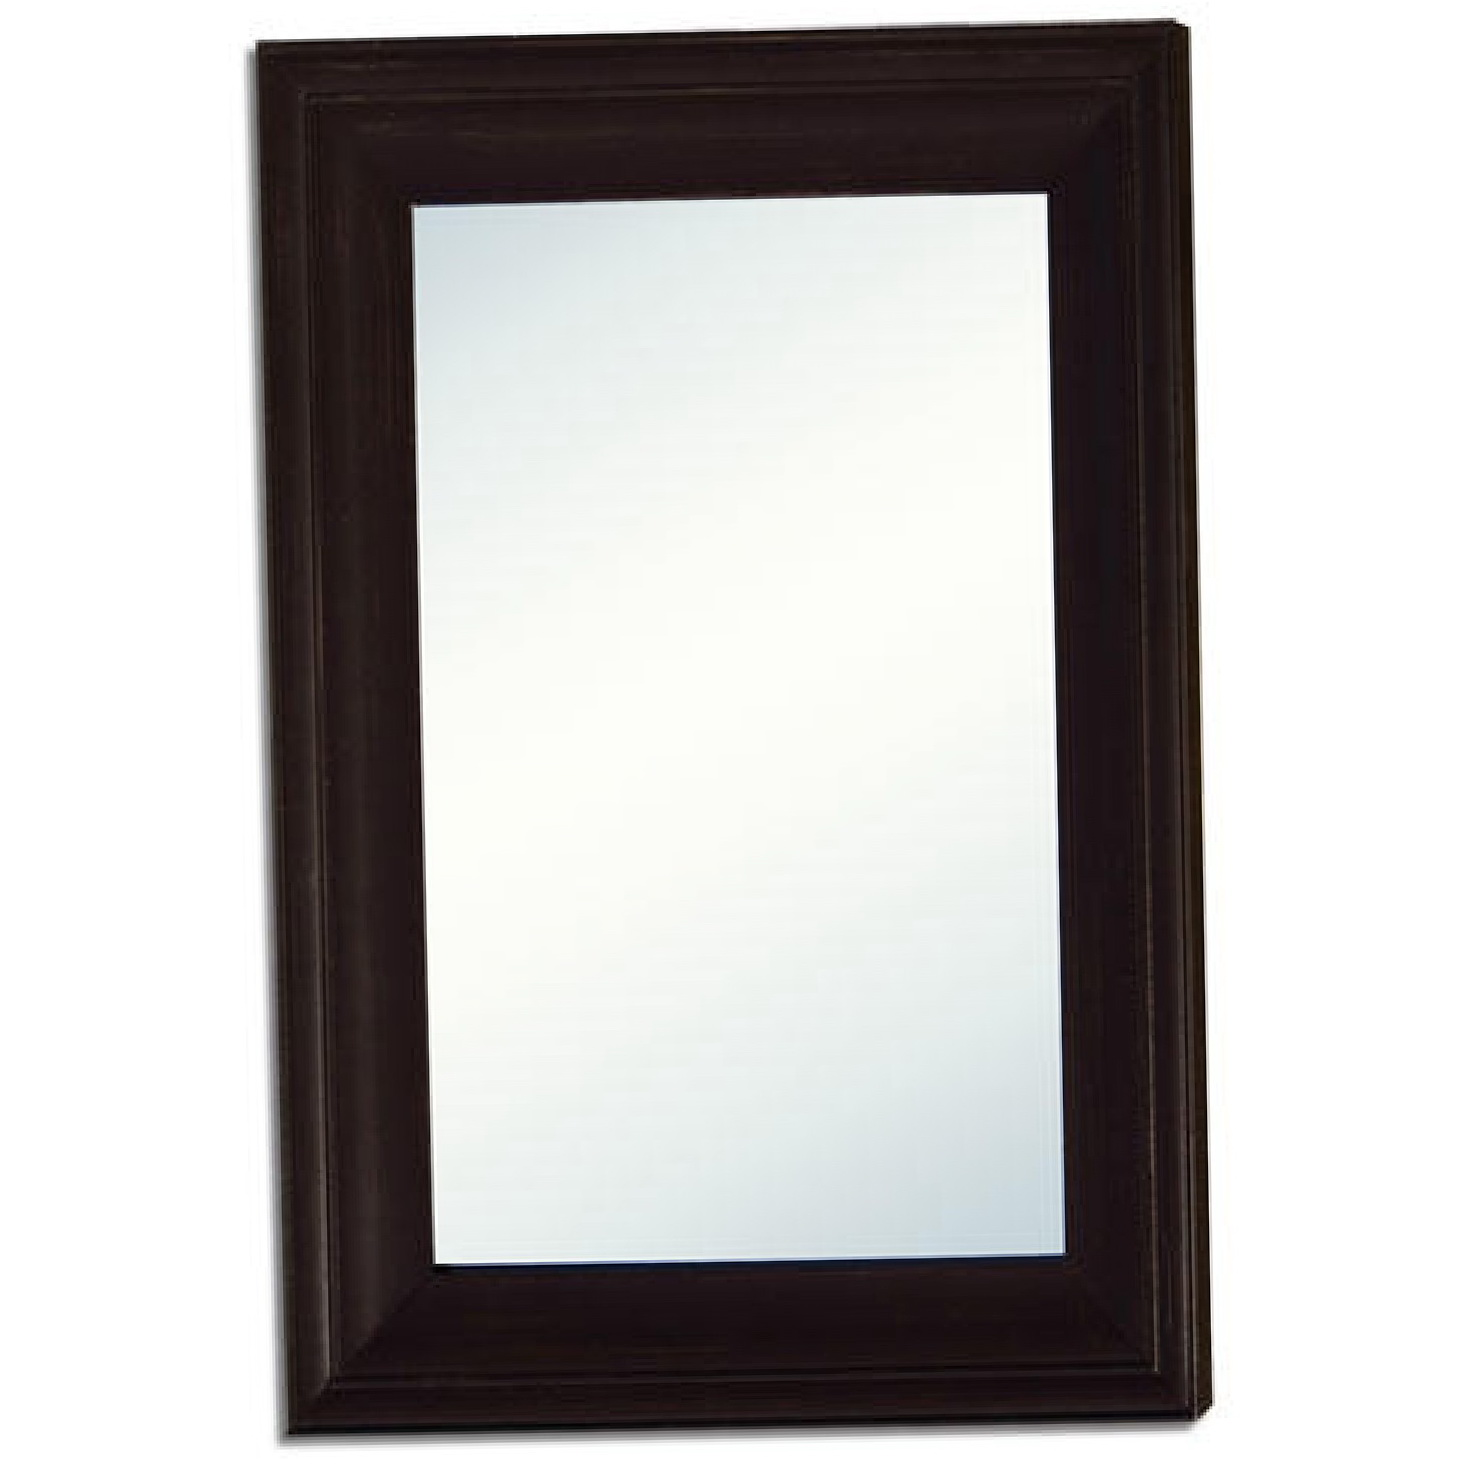 Oil Rubbed Bronze Mirror Frame Kit Home Design Ideas